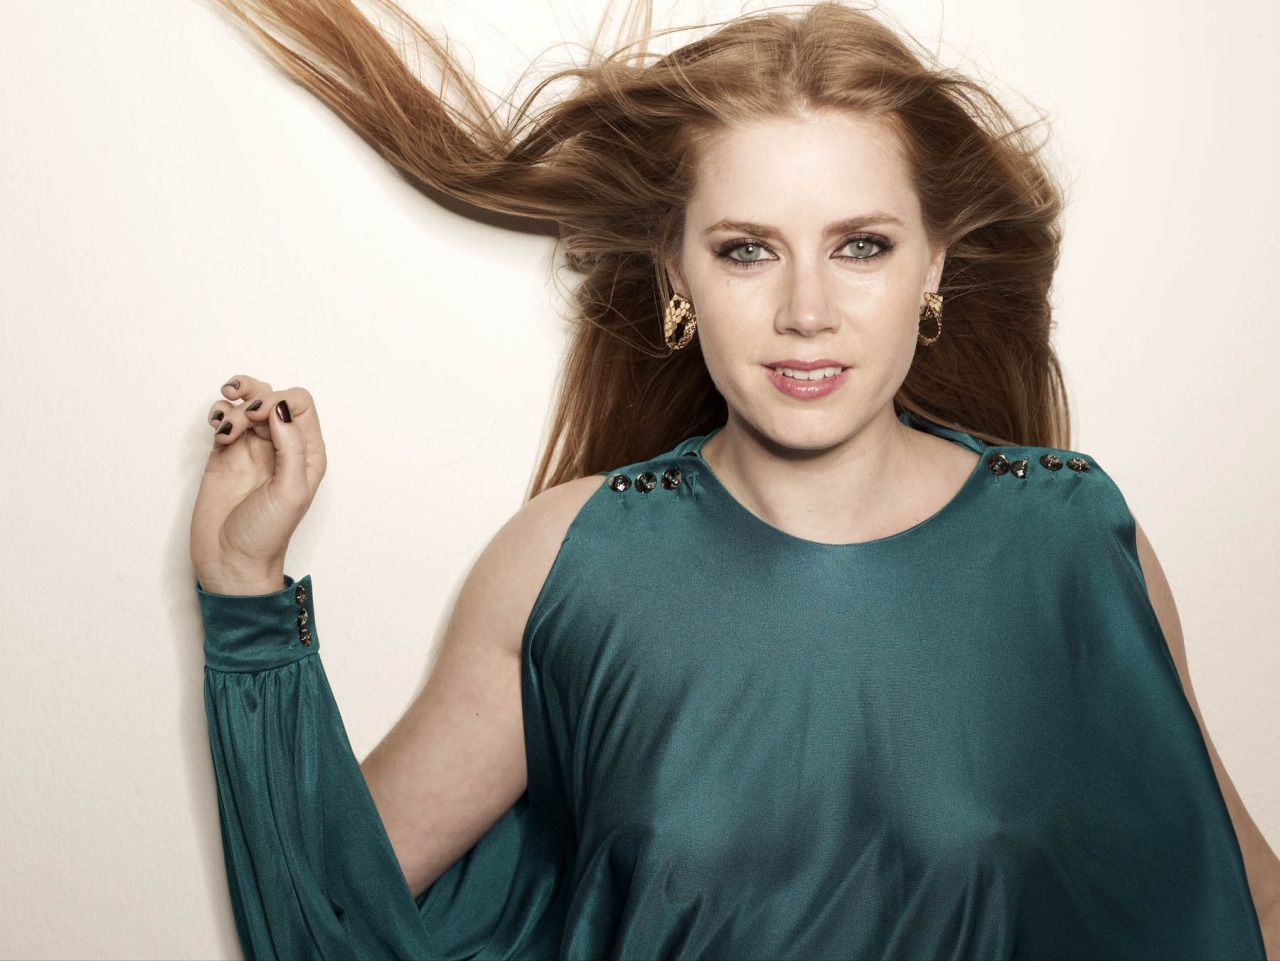 Amy Adams No Bra And Thin Top Celebrity Cleavage In Plunging Revealing Fashion